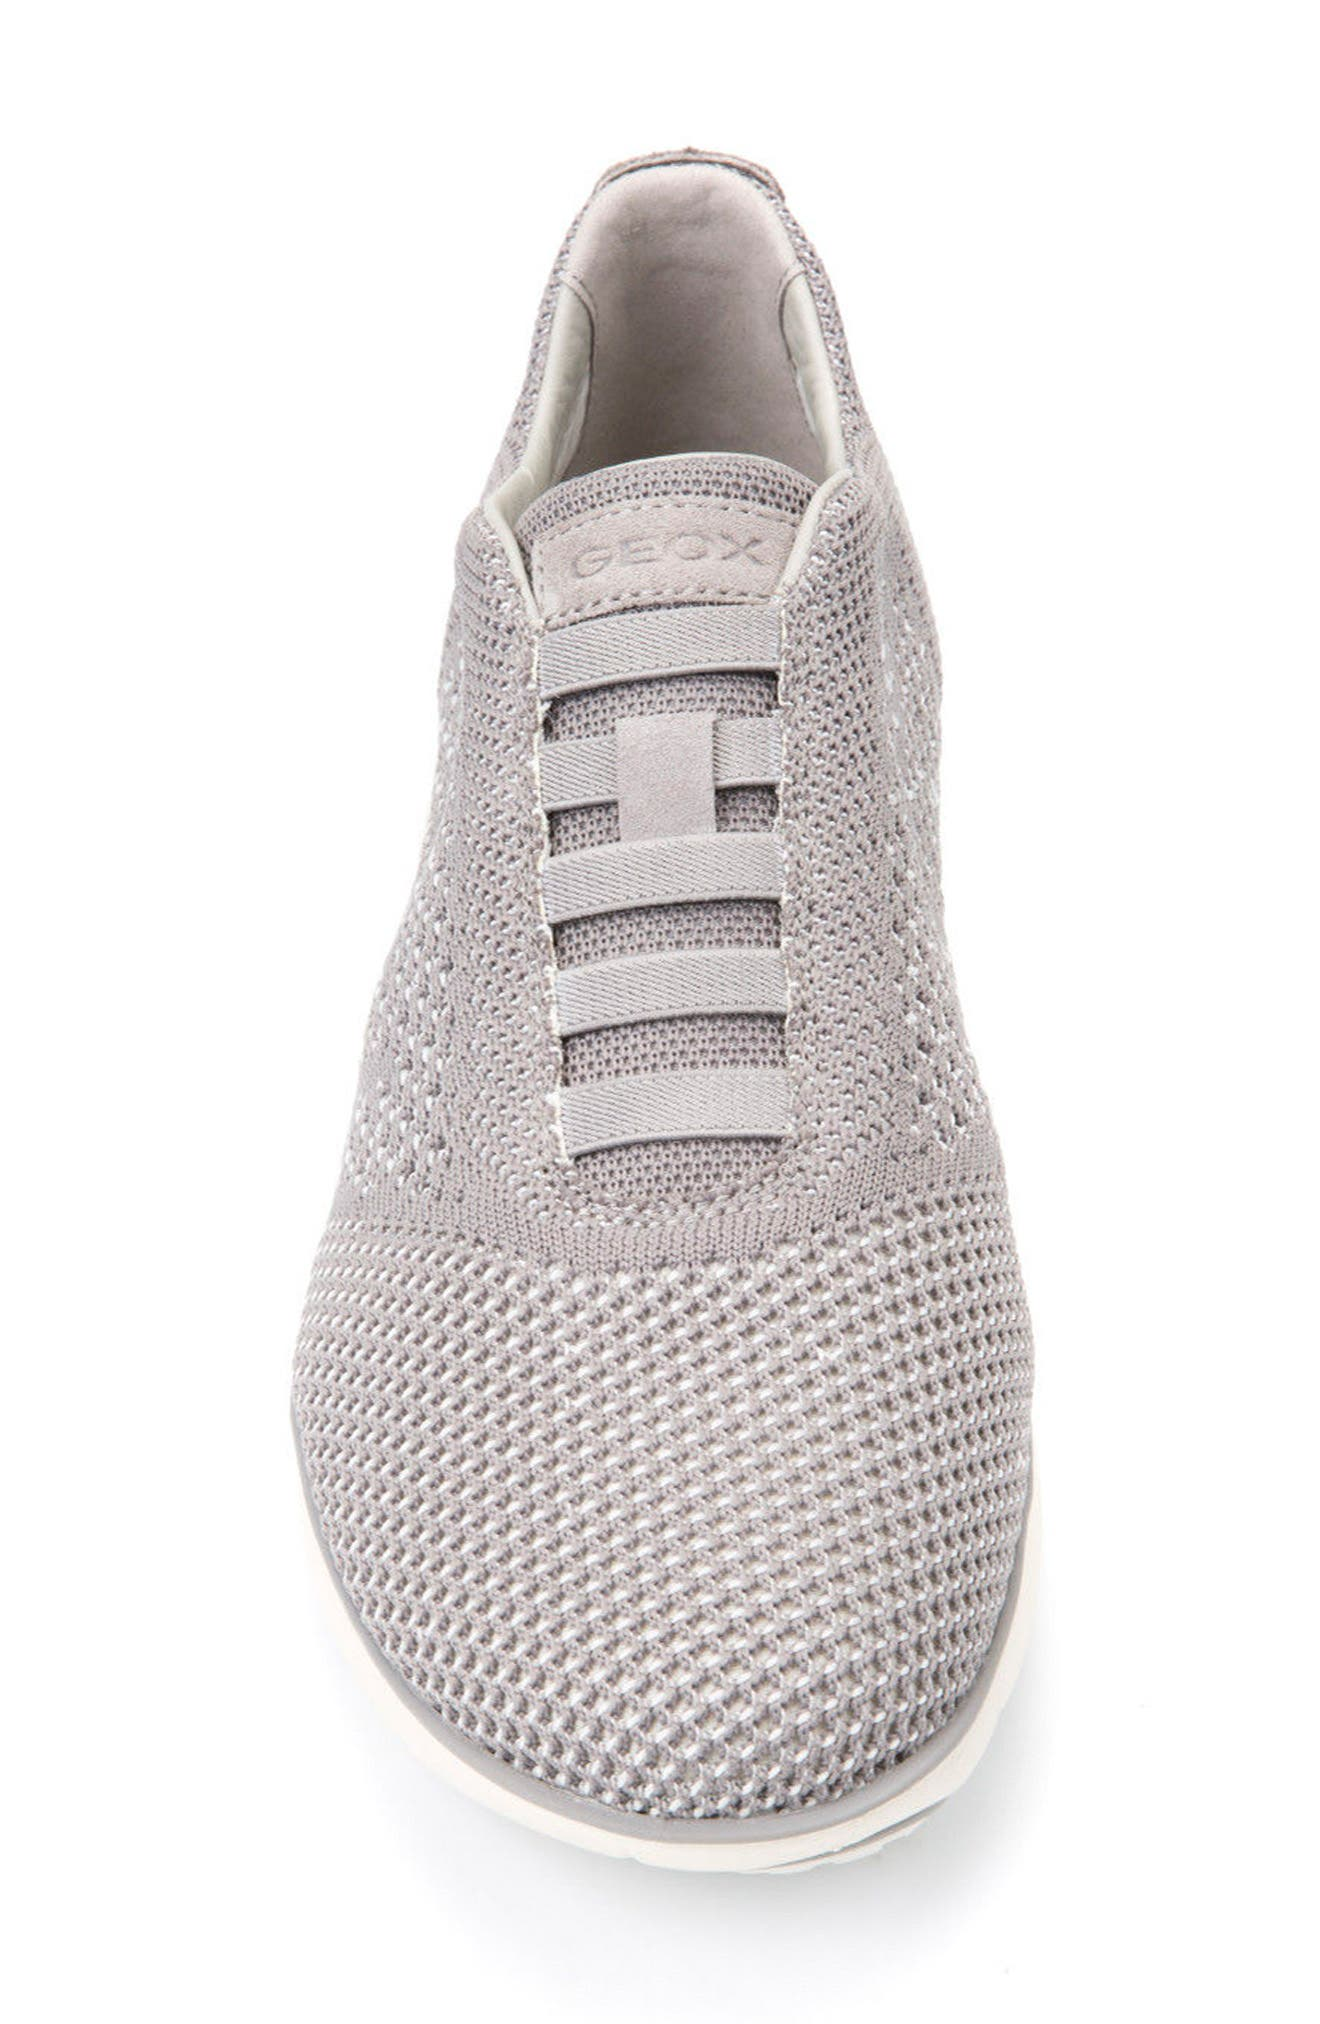 Nebula 42 Laceless Knit Sneaker,                             Alternate thumbnail 4, color,                             STONE/ WHITE